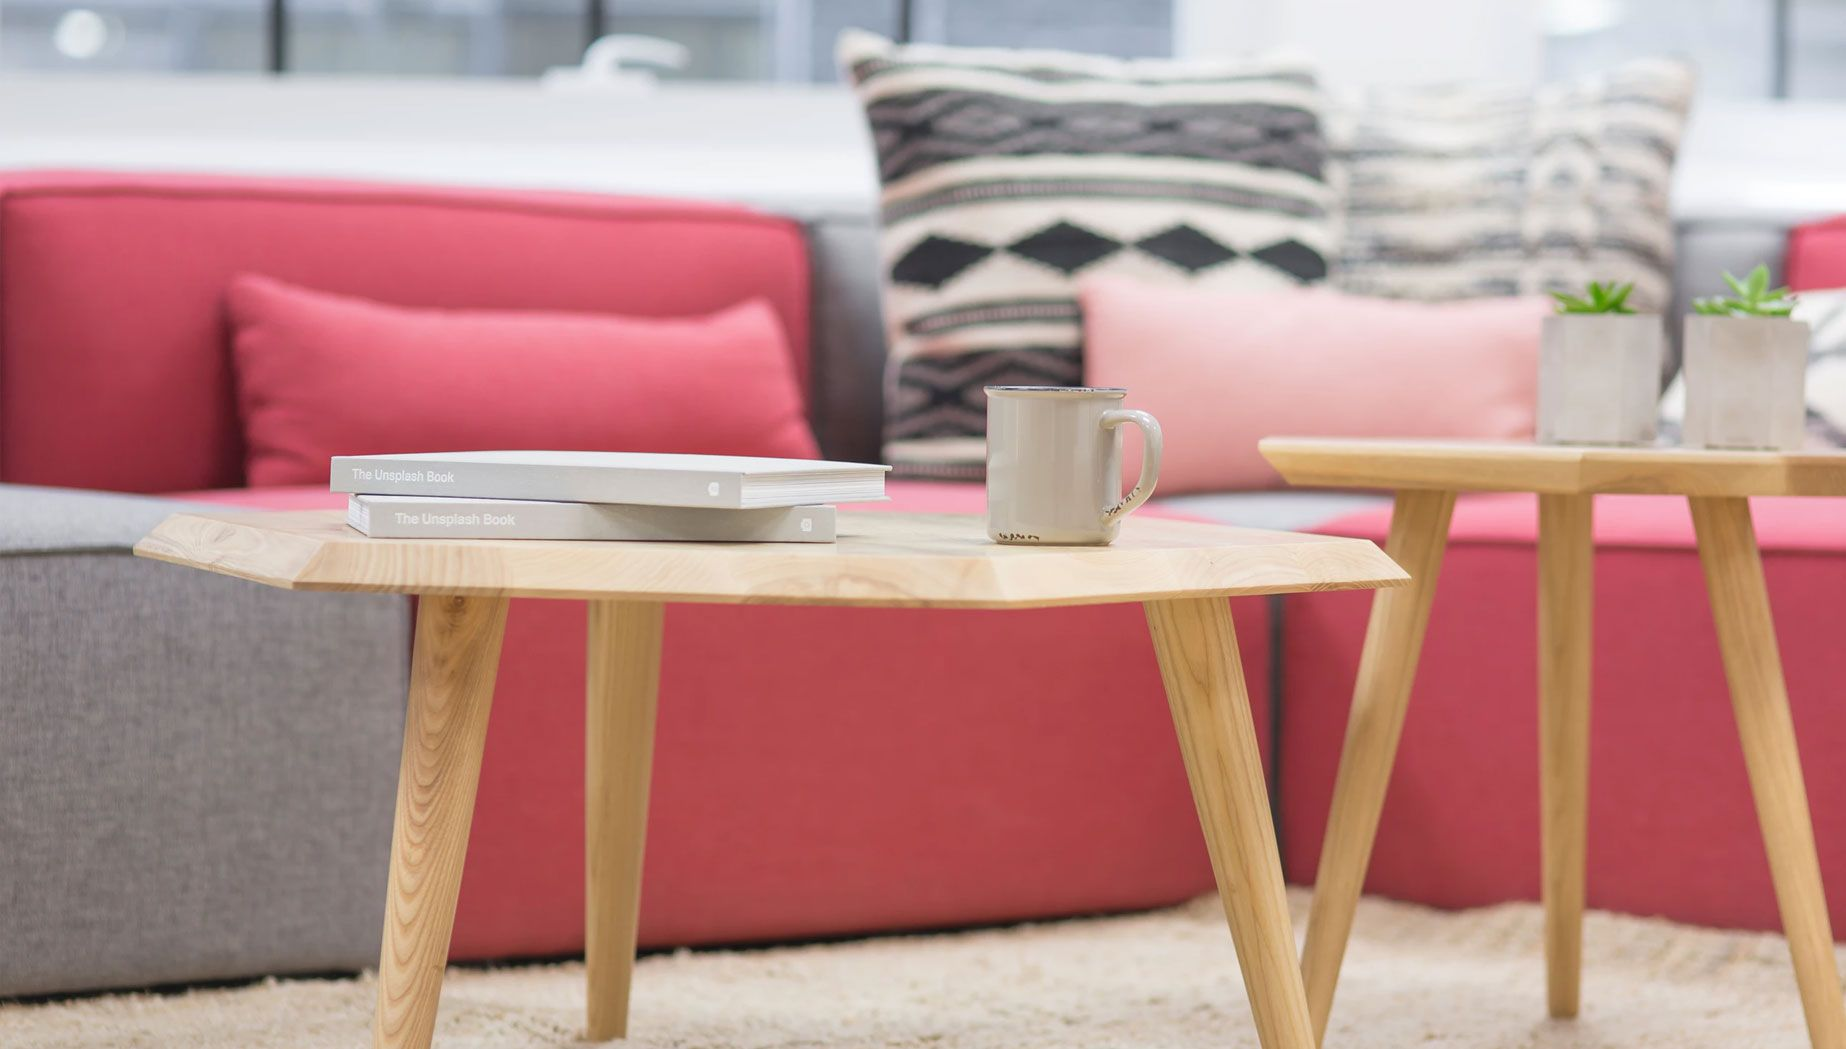 Wooden Table with Books & Mug